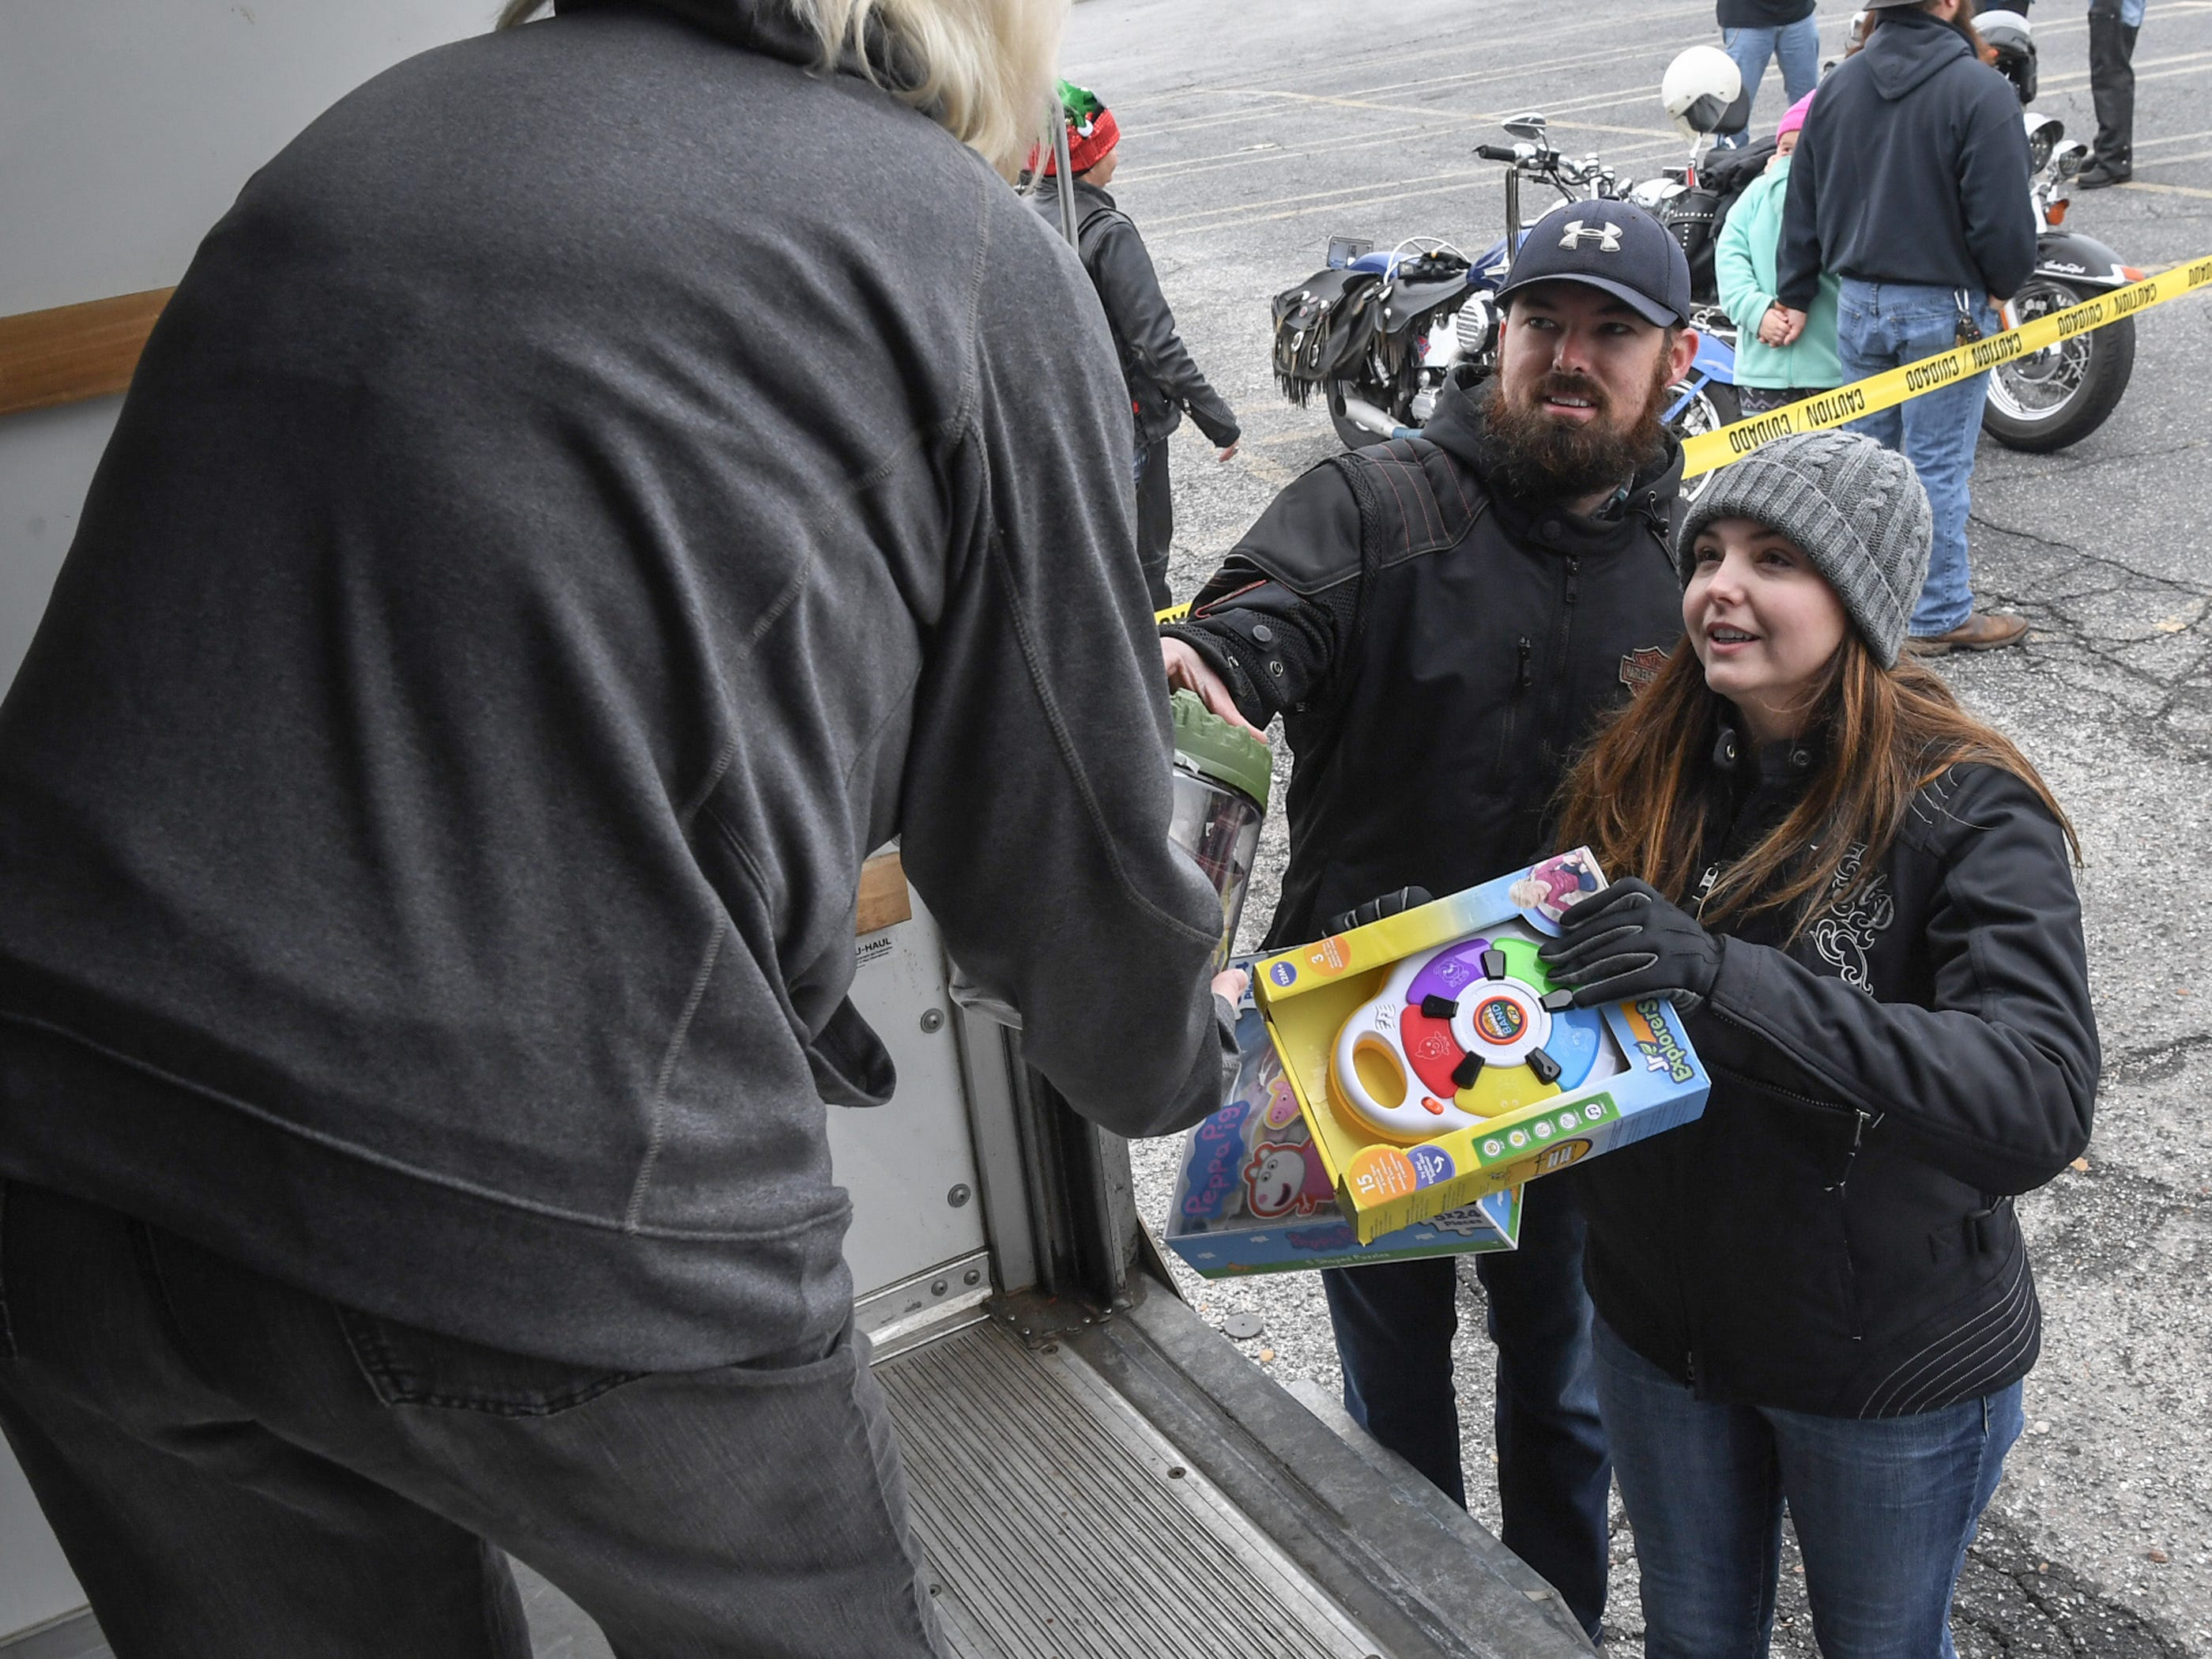 """Matthew and Valerie Wilson of Abbeville bring toys to Debbie Wilbanks of White Jones Hardware, before the 38th Jack Hurley Toy Parade in Anderson on Sunday, November 25, 2018. The parade started at White Jones Hardware parking lot in the Watson Village, followed along Main Street to the Civic Center of Anderson where toys were donated to Anderson Cares and Shares. Organizer Robert """"Little Man"""" Fagg said about 350 families are helped out with toys for Christmas."""